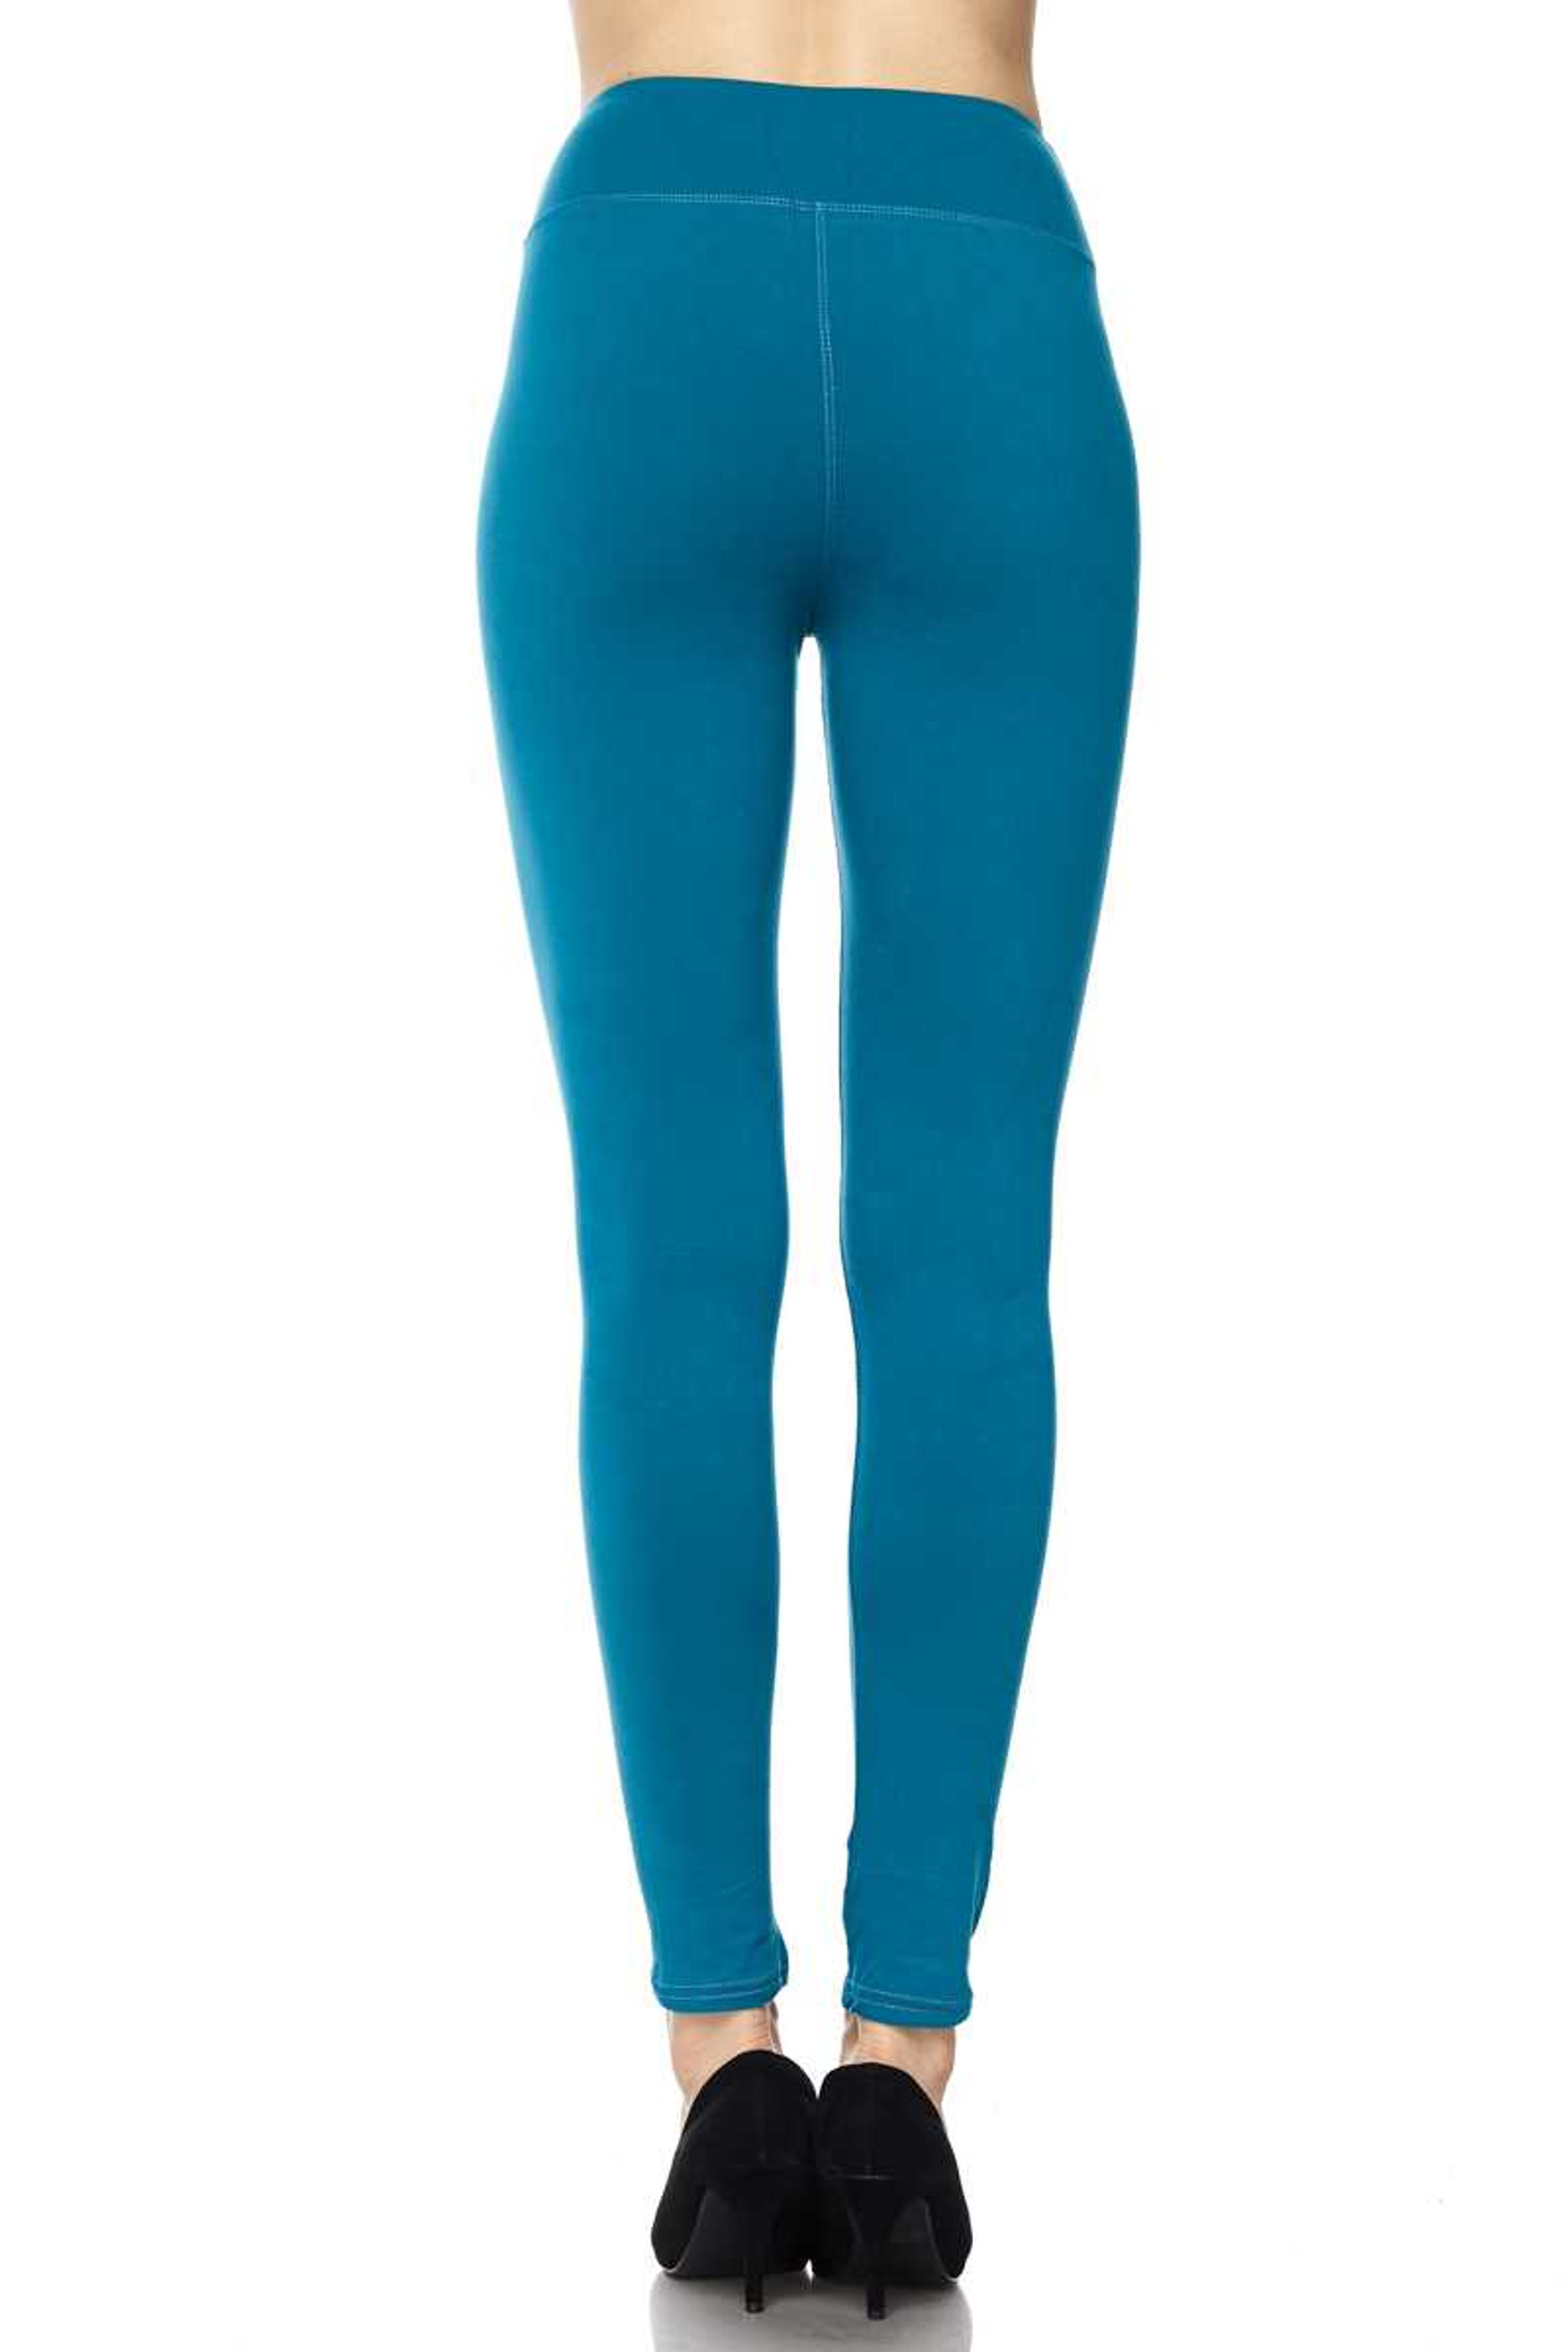 Brushed High Waisted Basic Solid Leggings - 3 Inch Waist